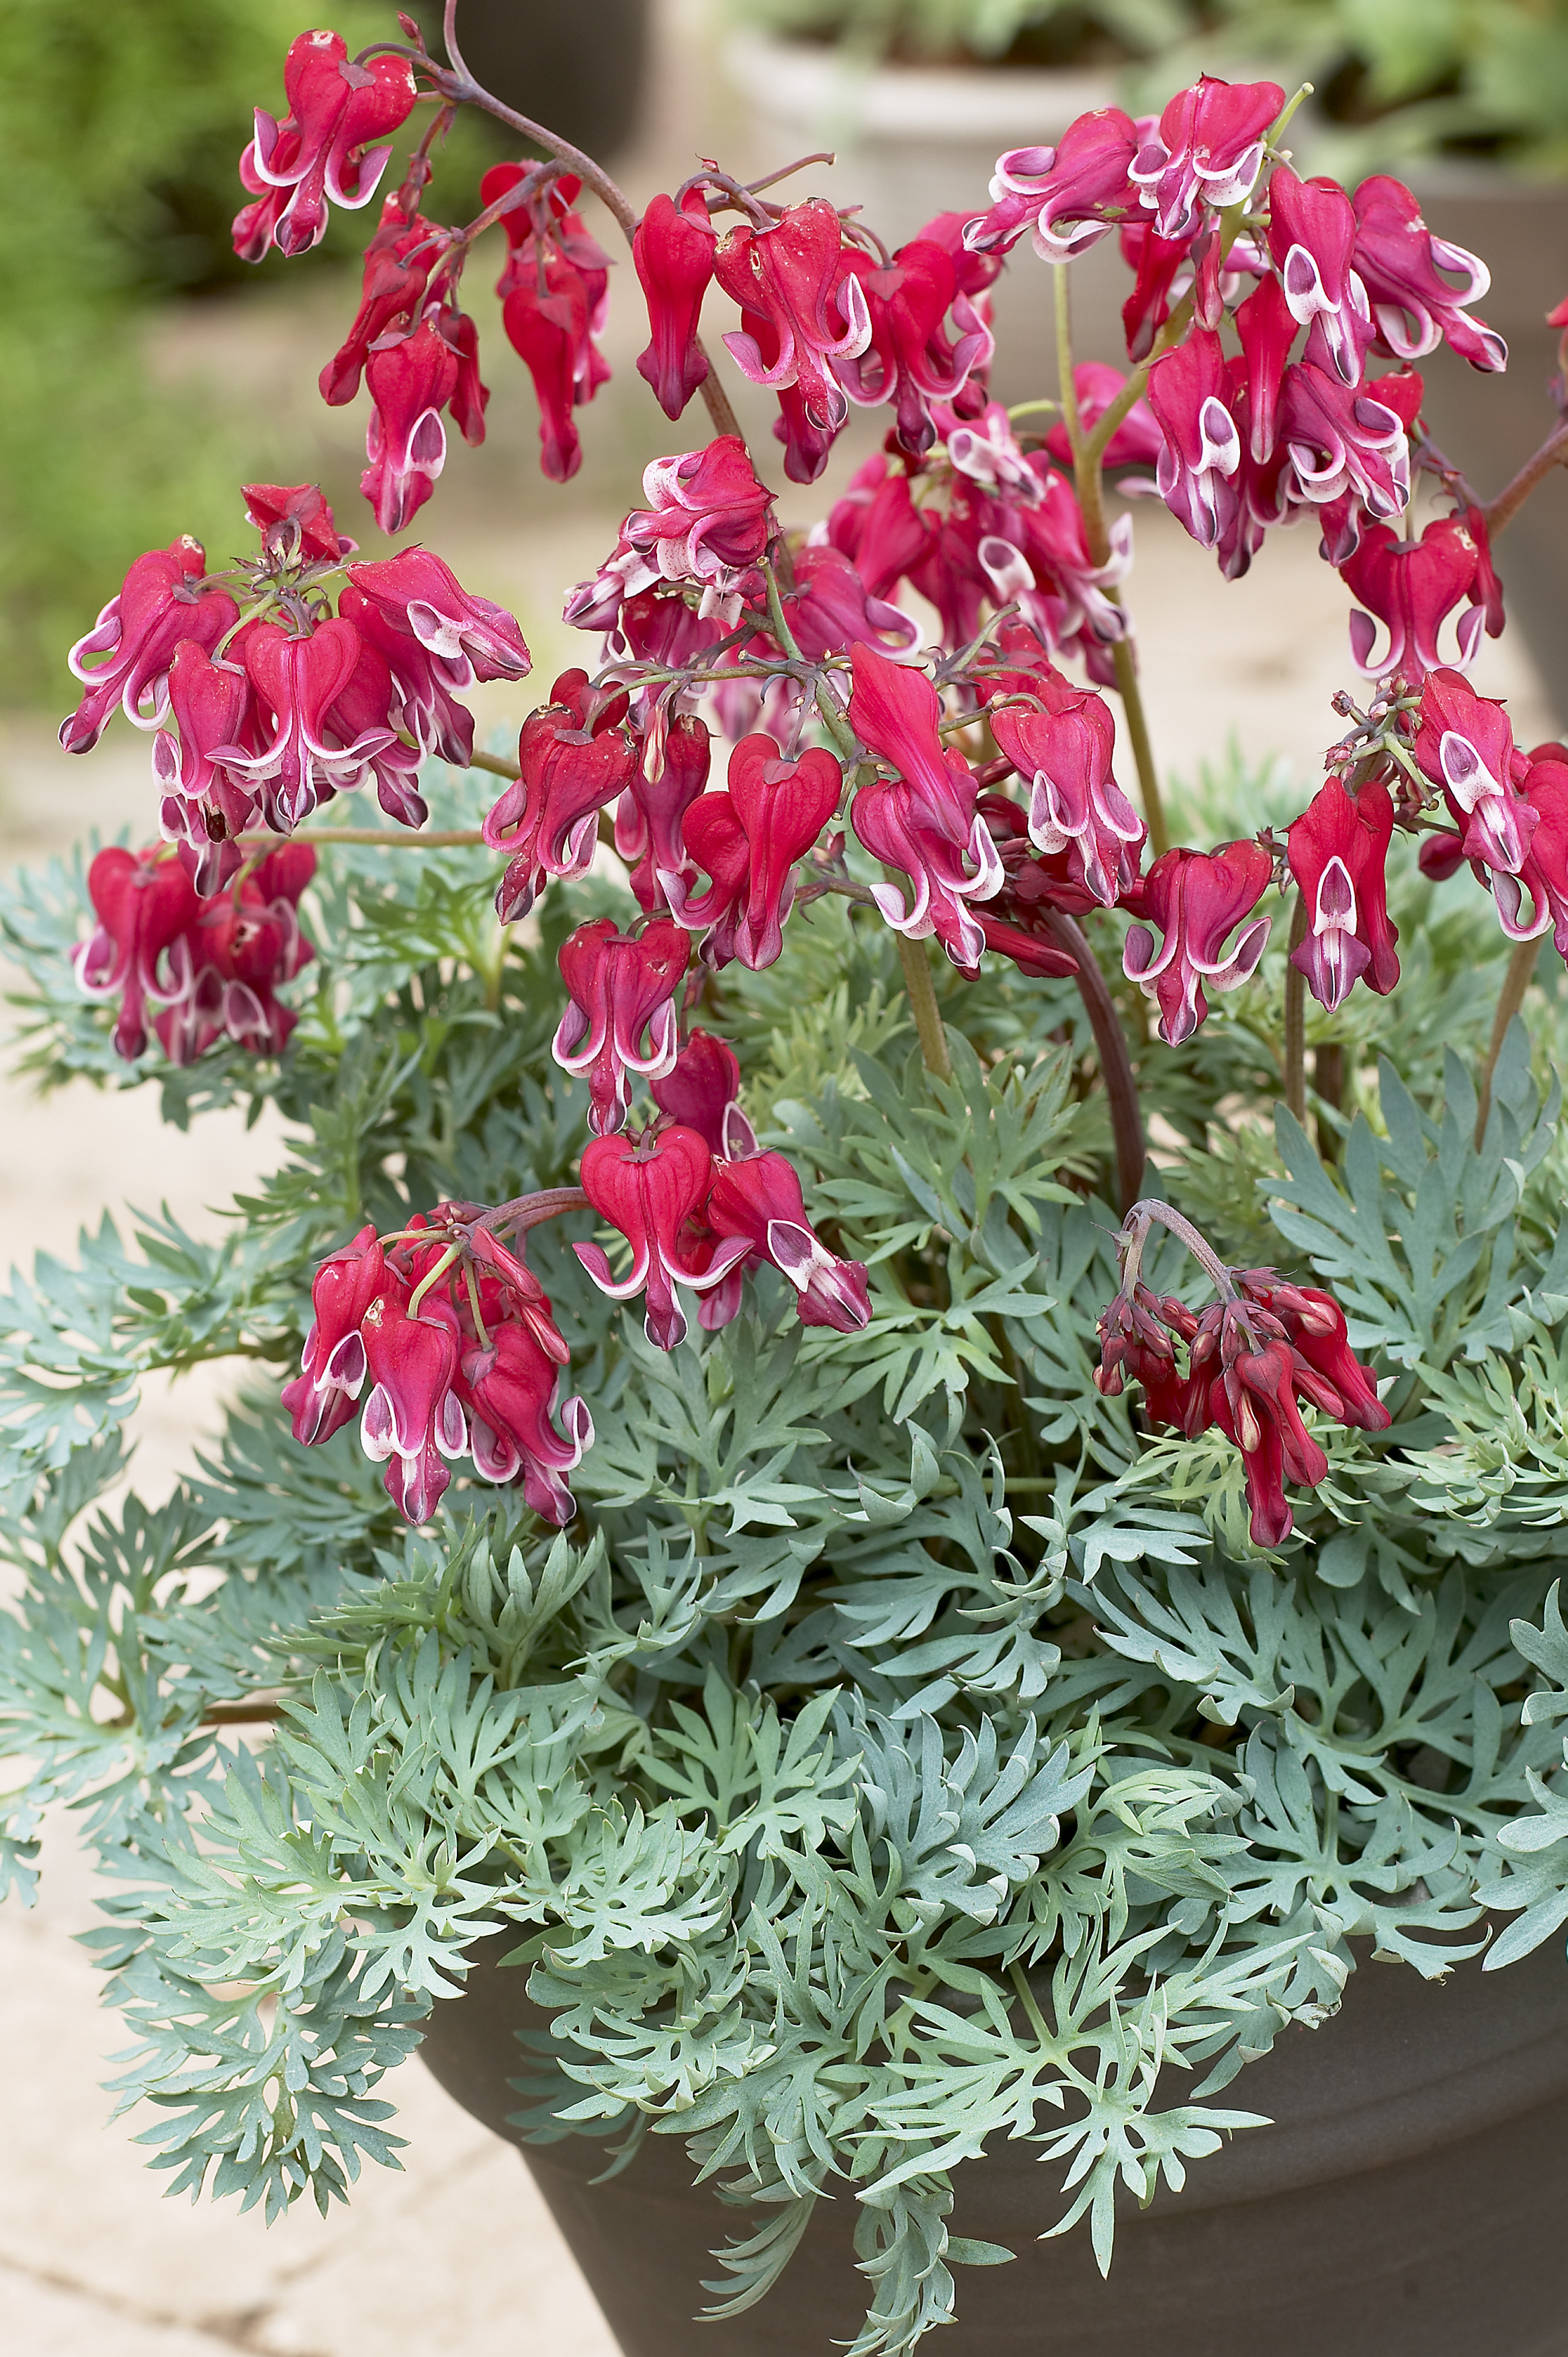 Bleeding Heart Dicentra x Burning Hearts from Growing Colors